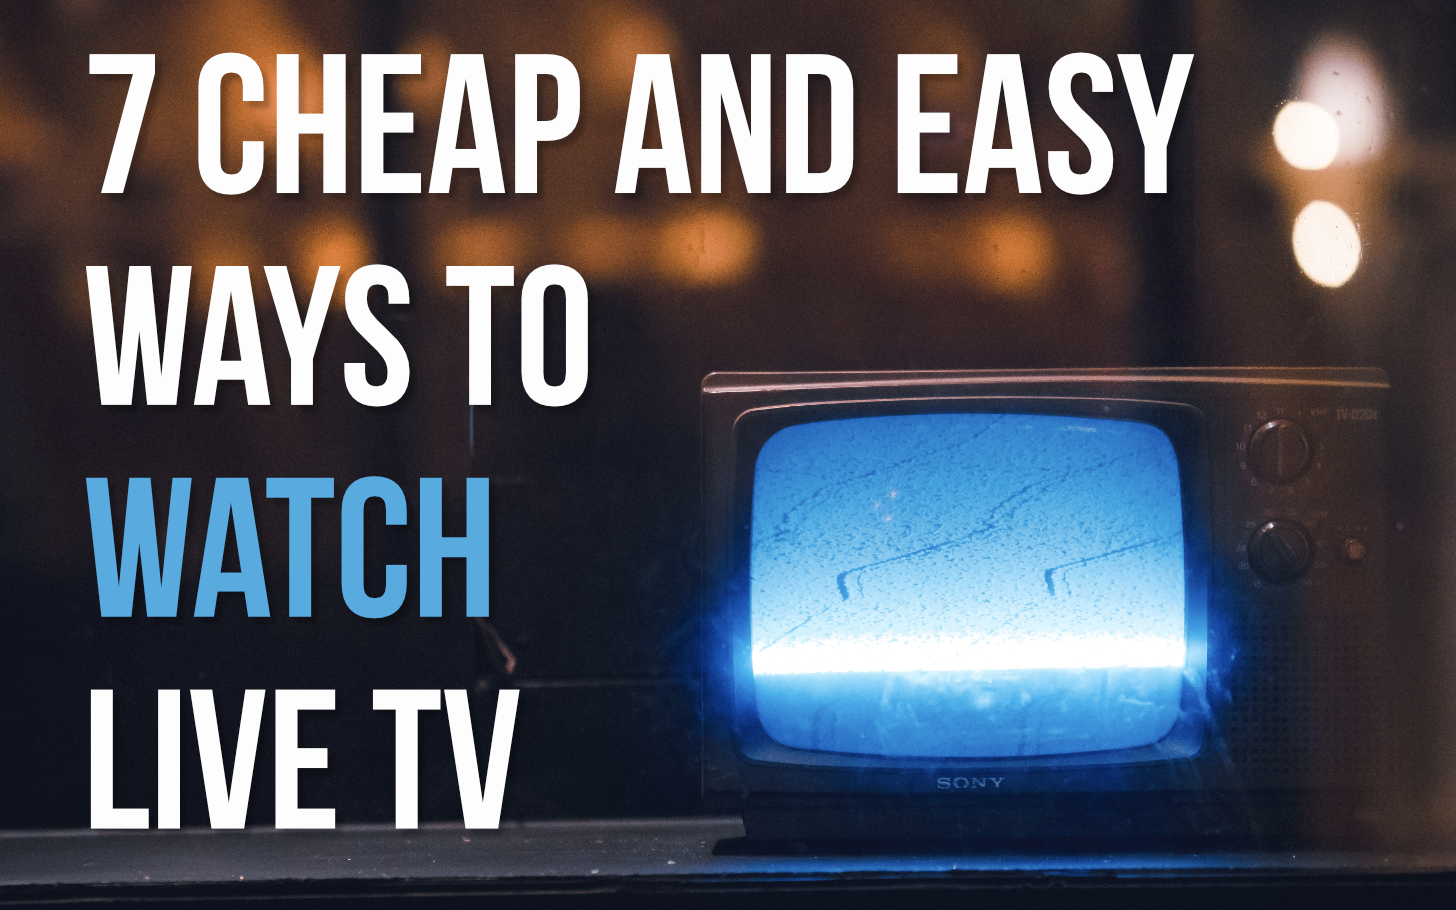 7 cheap and easy ways to watch live TV on Android, Chromecast, Fire TV, and more